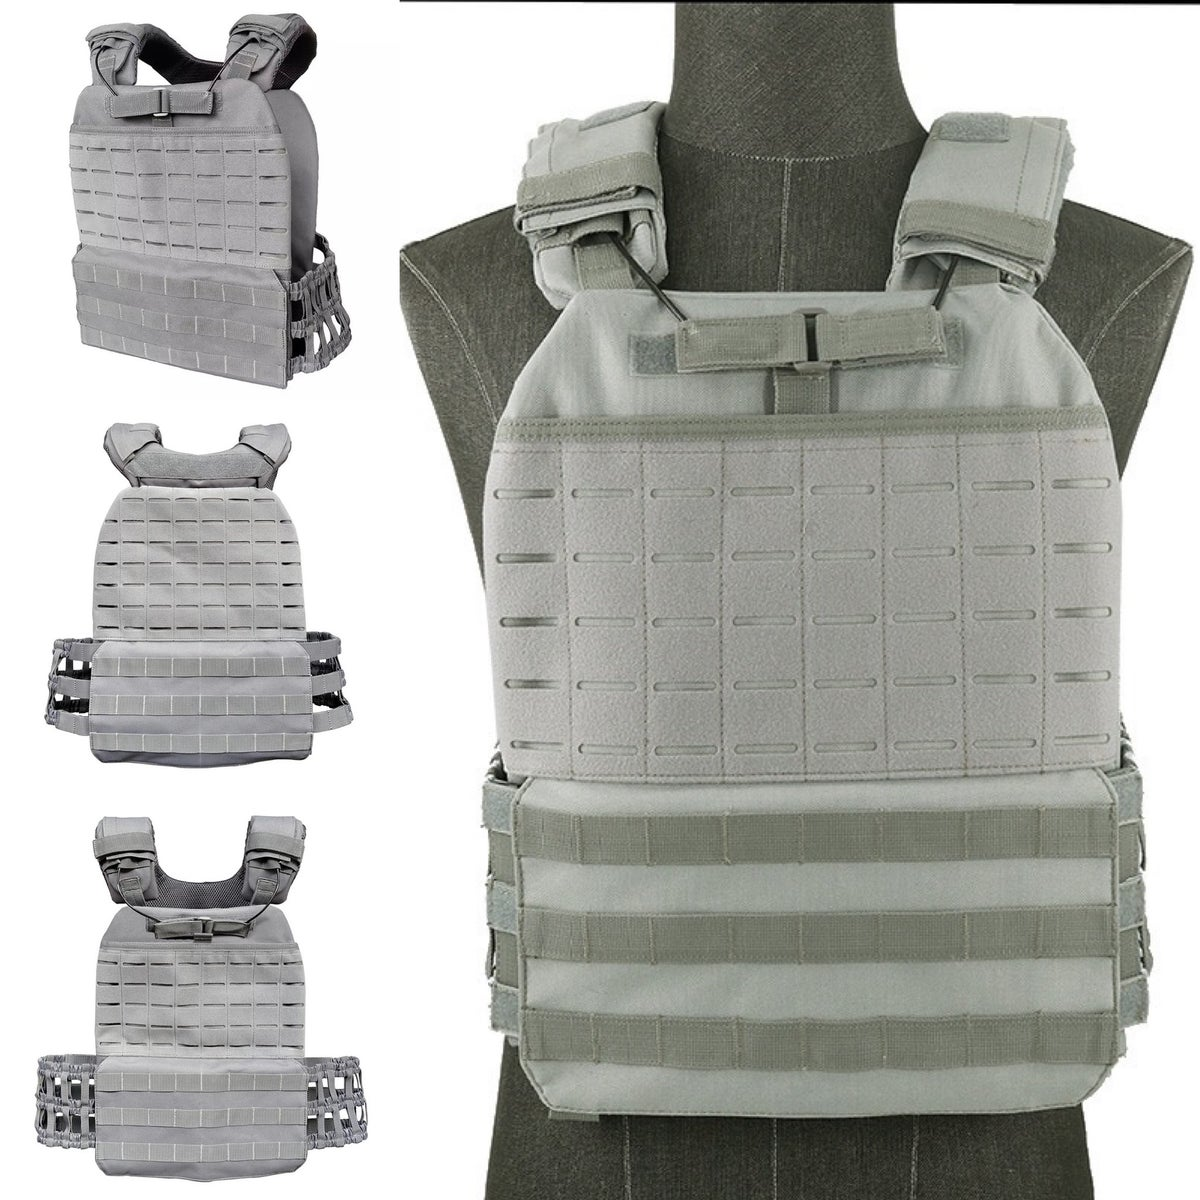 Image of Weighted Tactical Training Vests